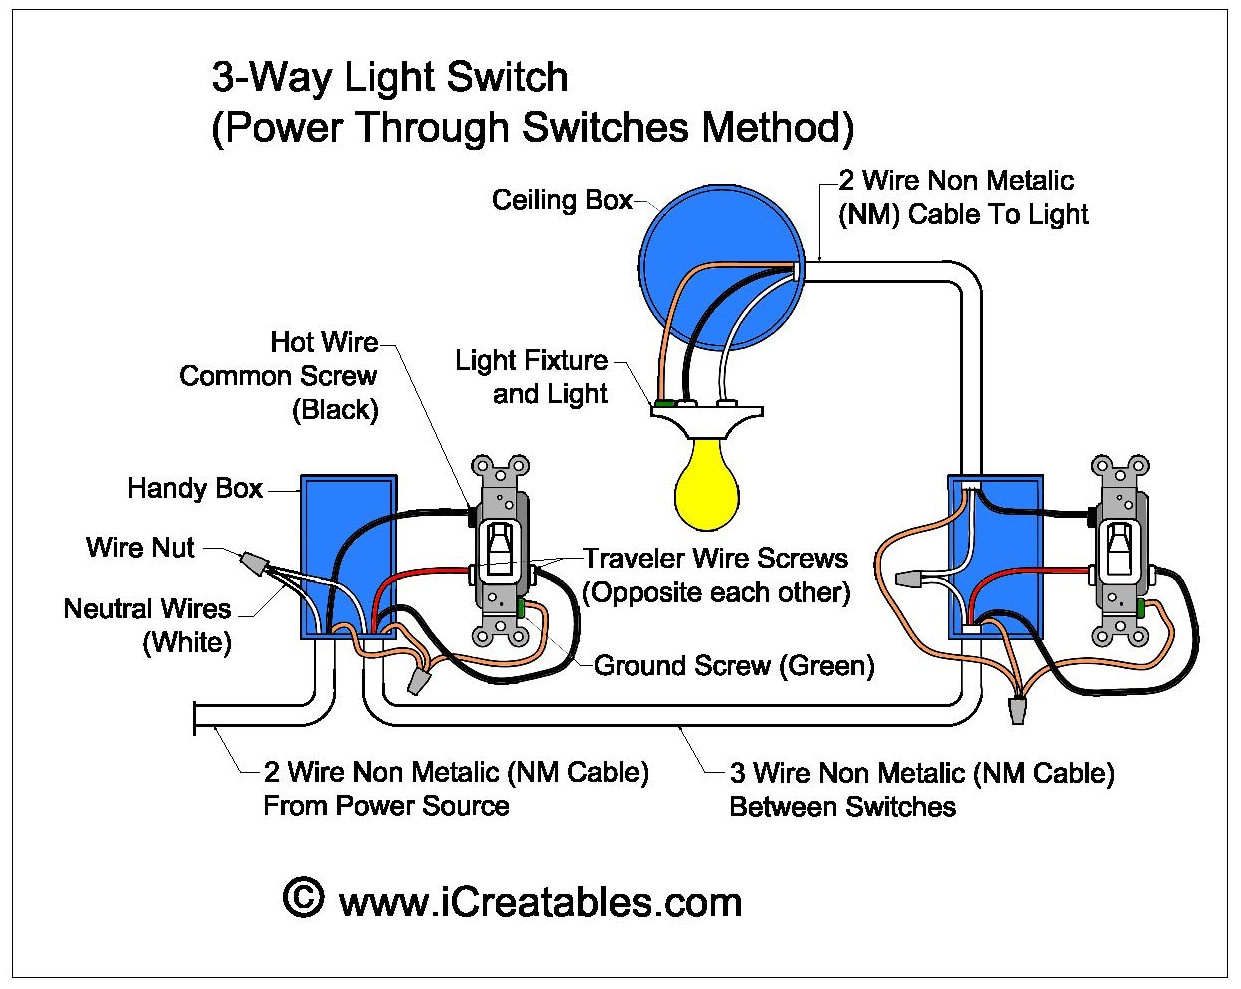 Simple Wiring Diagram For 3-Way Switch from www.icreatables.com